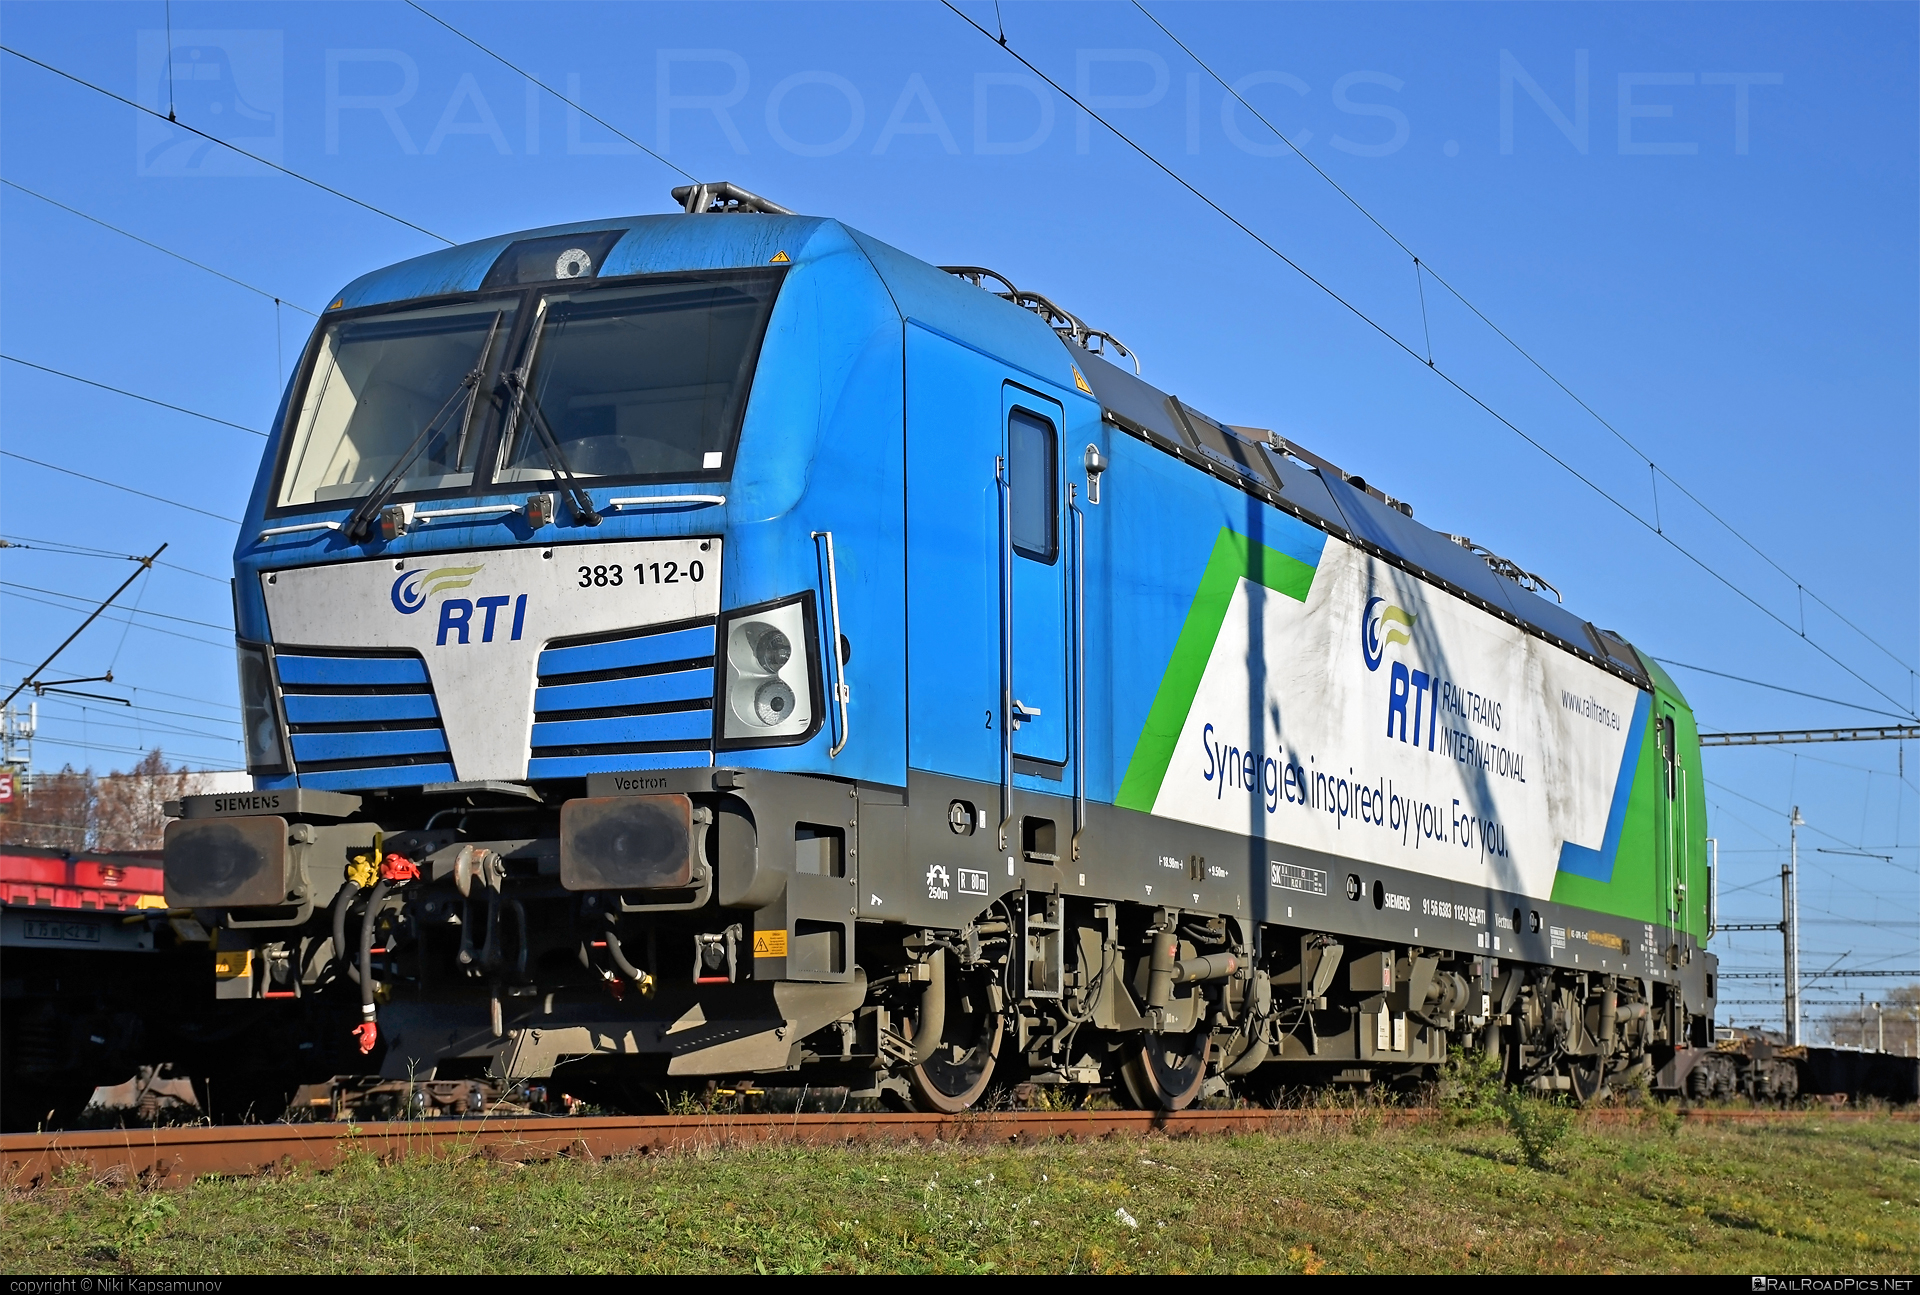 Siemens Vectron MS - 383 112-0 operated by Railtrans International, s.r.o #rti #siemens #siemensvectron #siemensvectronms #vectron #vectronms